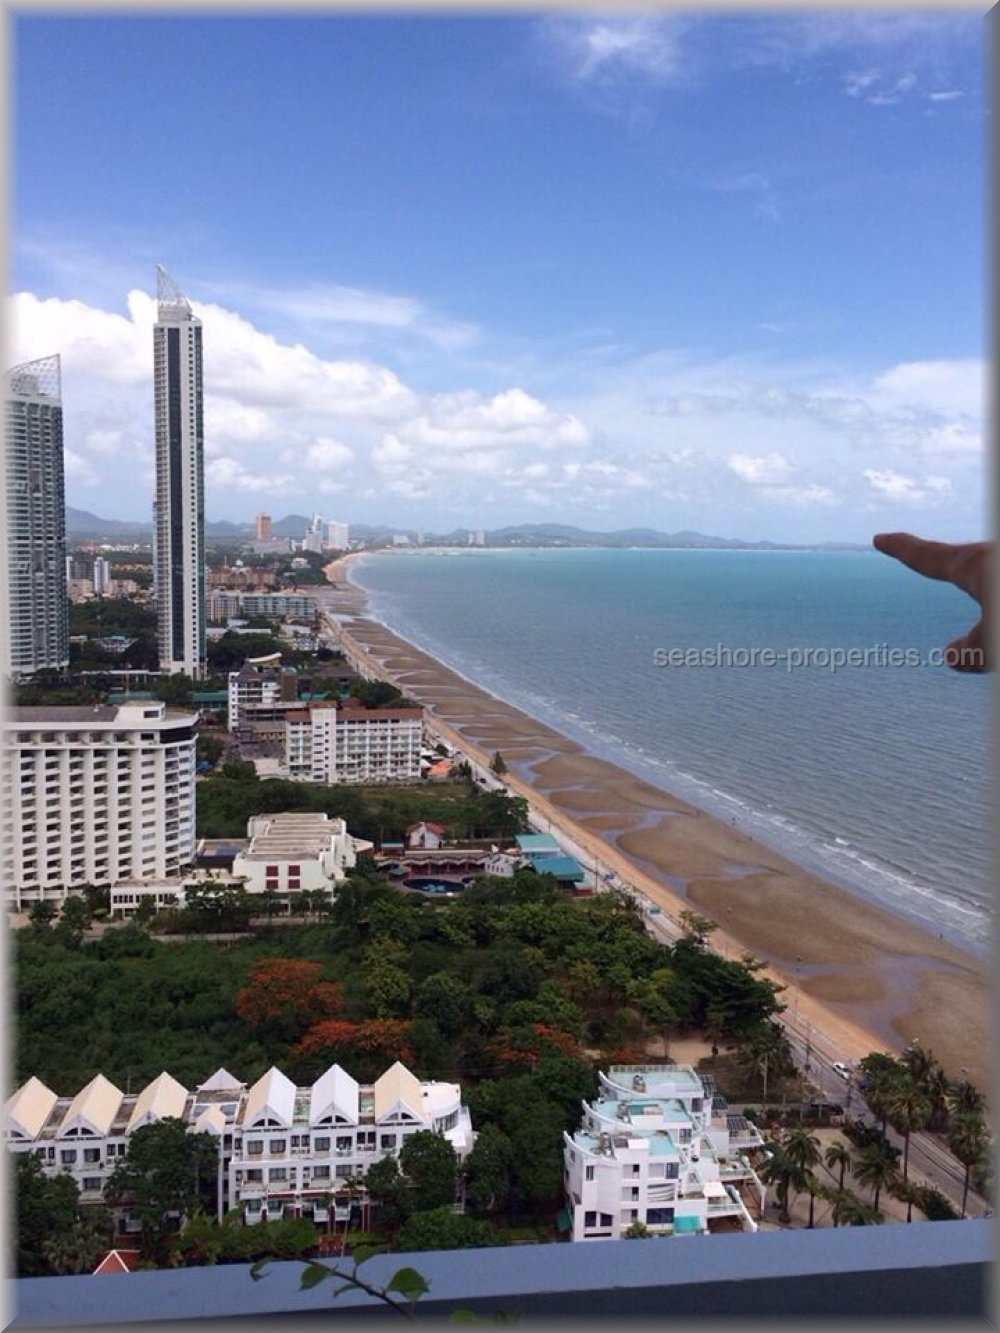 lumpini park beach jomtien     to rent in Jomtien Pattaya